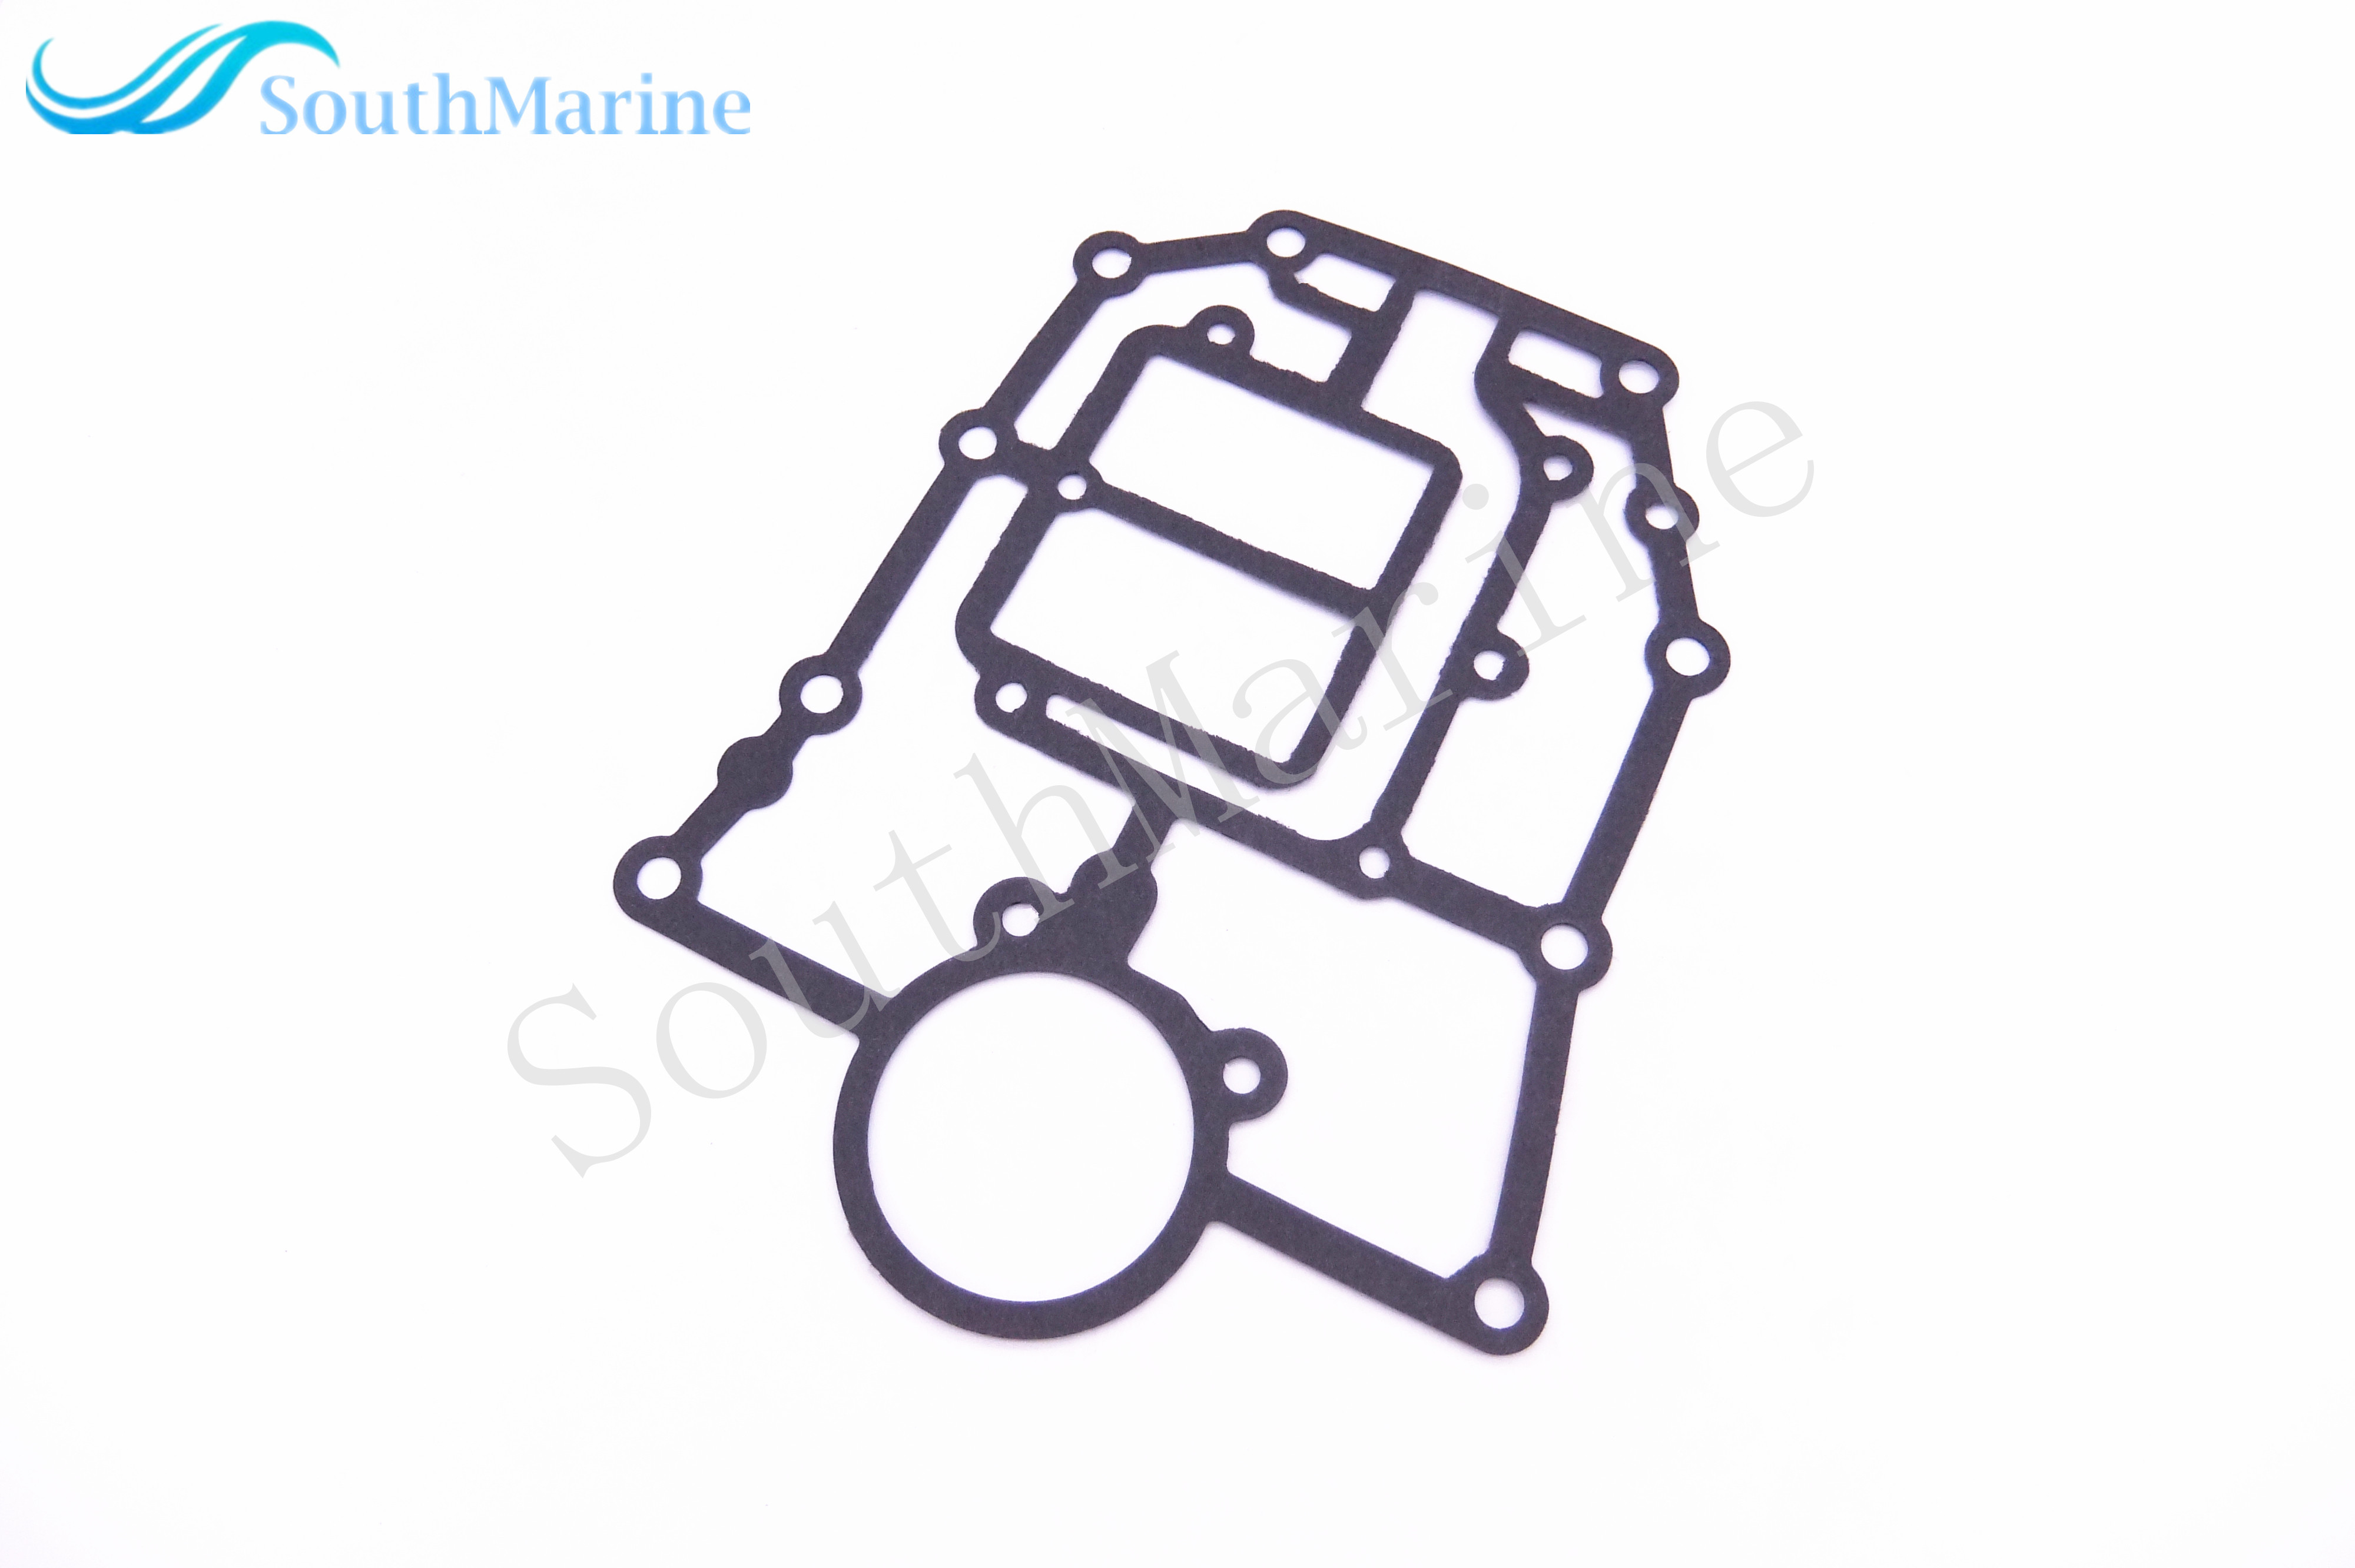 hight resolution of 11433 94412 boat motor gasket under oil seal for suzuki 40hp dt40 outboard engine 11433 94411